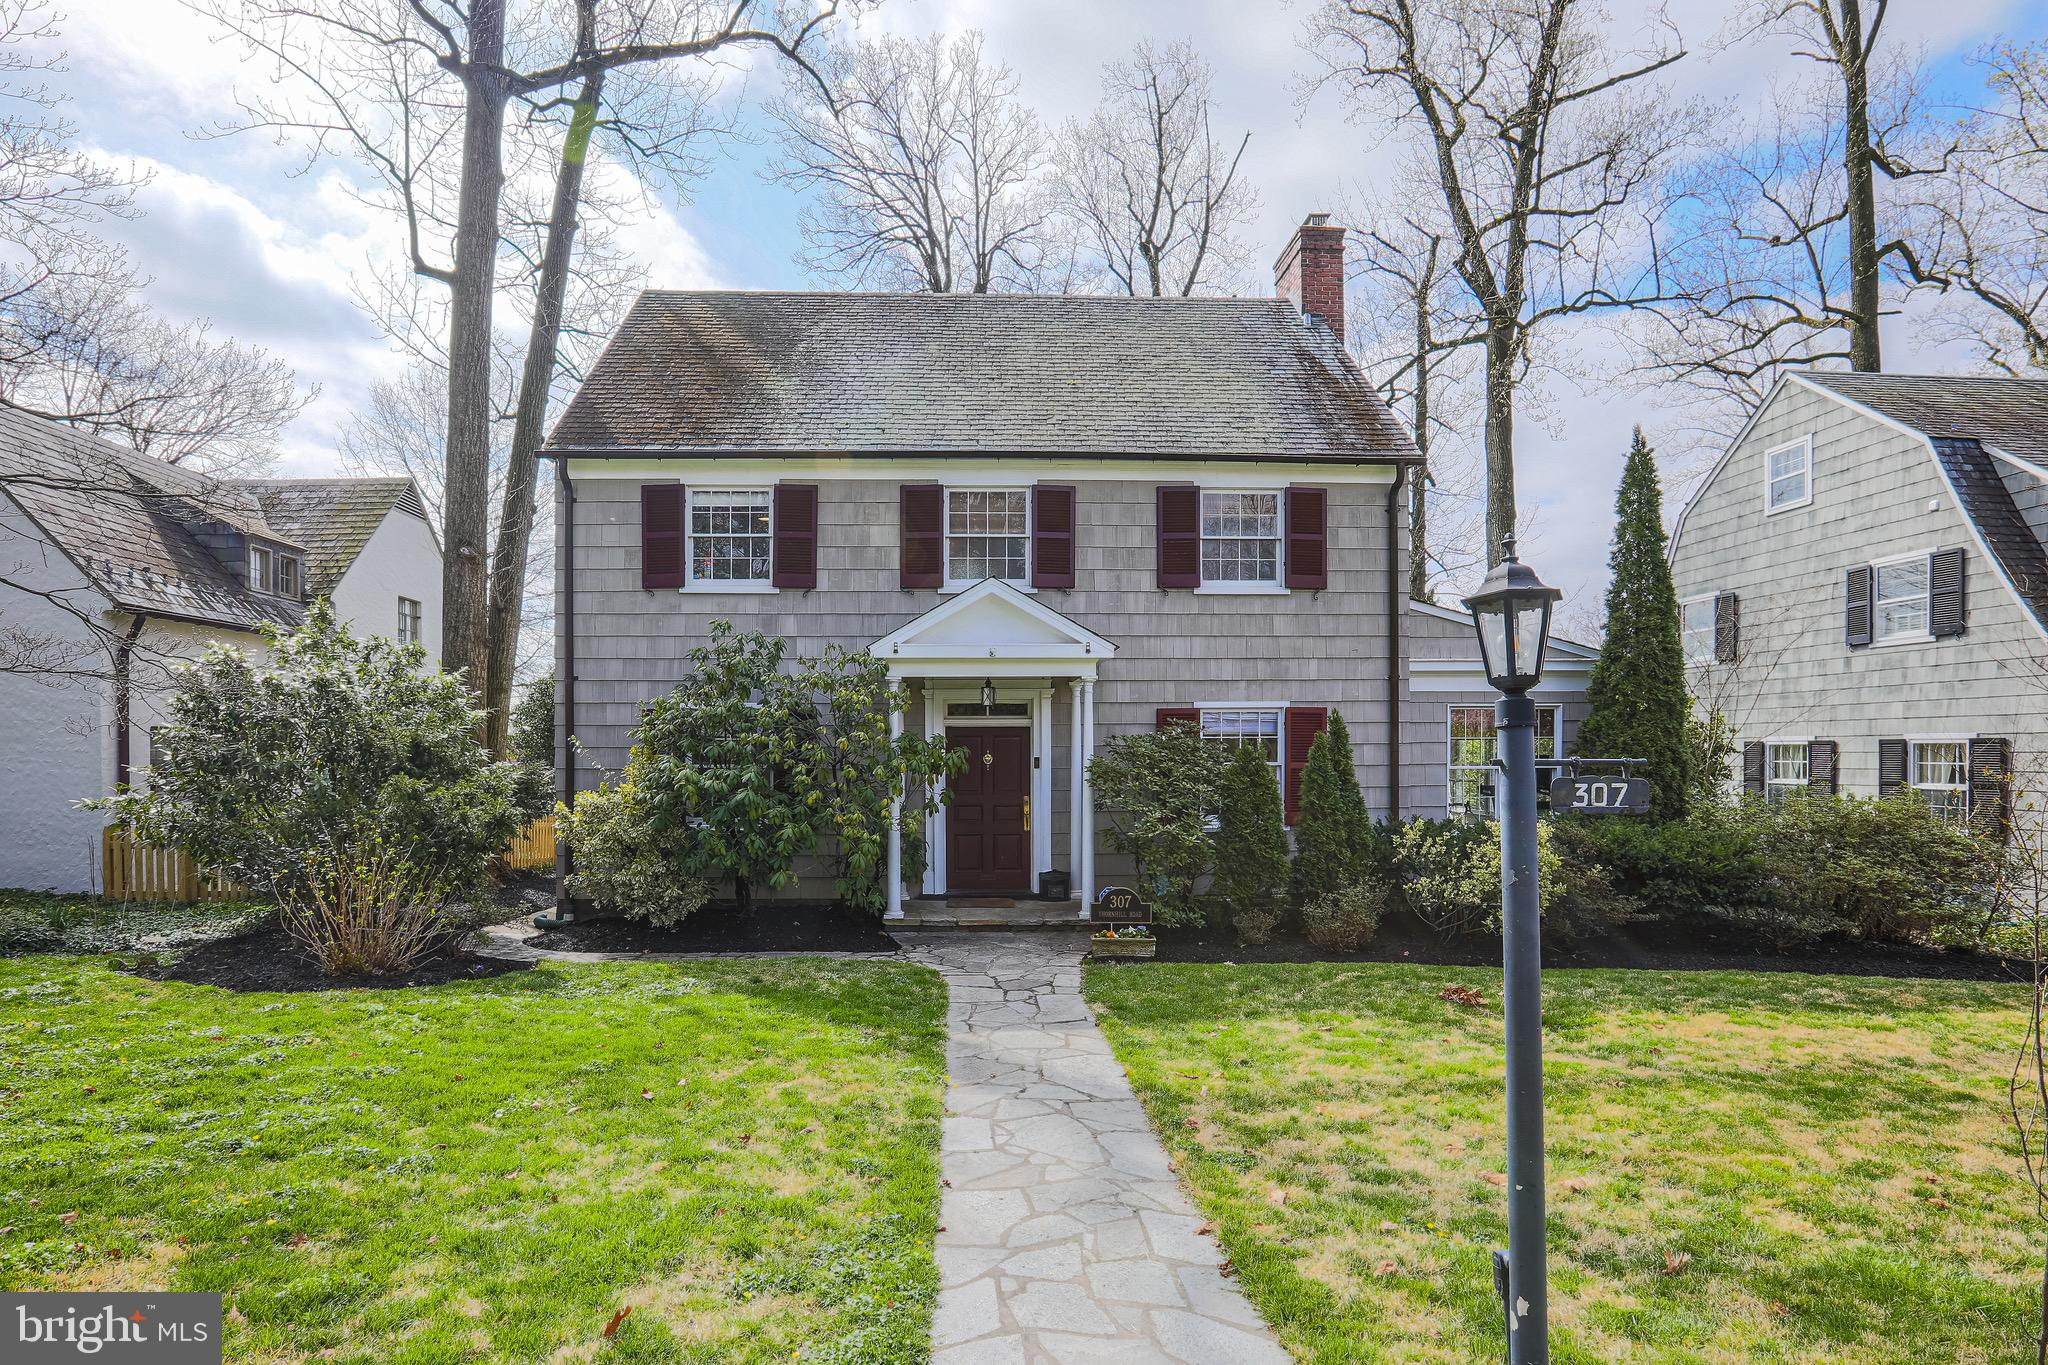 Just reduced! Gorgeous English style colonial  set back on a quiet side street of historic Homeland.    This light filled  5  bedroom, 3.5 bath has been tastefully updated throughout while keeping all of the charm of it's era.  Hardwood floors,  newer appliances, granite counters, open living room  with fireplace and  adjoining sunroom, large  dining room,  newly renovated  master and hall baths, custom barn doors and  closet in master, central air,  and  new flooring in the basement.   3rd floor has 2 rooms and a full bath perfect for guests, a  yoga room  and /or office.  The finished basement has an open area and a utility room with plenty of storage  plus new washer and  dryer.  One of the best backyards in the neighborhood- a fenced in yard,  delightful  garden and stone patio perfect for relaxing or entertaining.   Enjoy the beautiful ponds and scenic paths a few blocks away.   A list of all updates is in the documents section. Click for virtual tour at top of listing.  A must see!